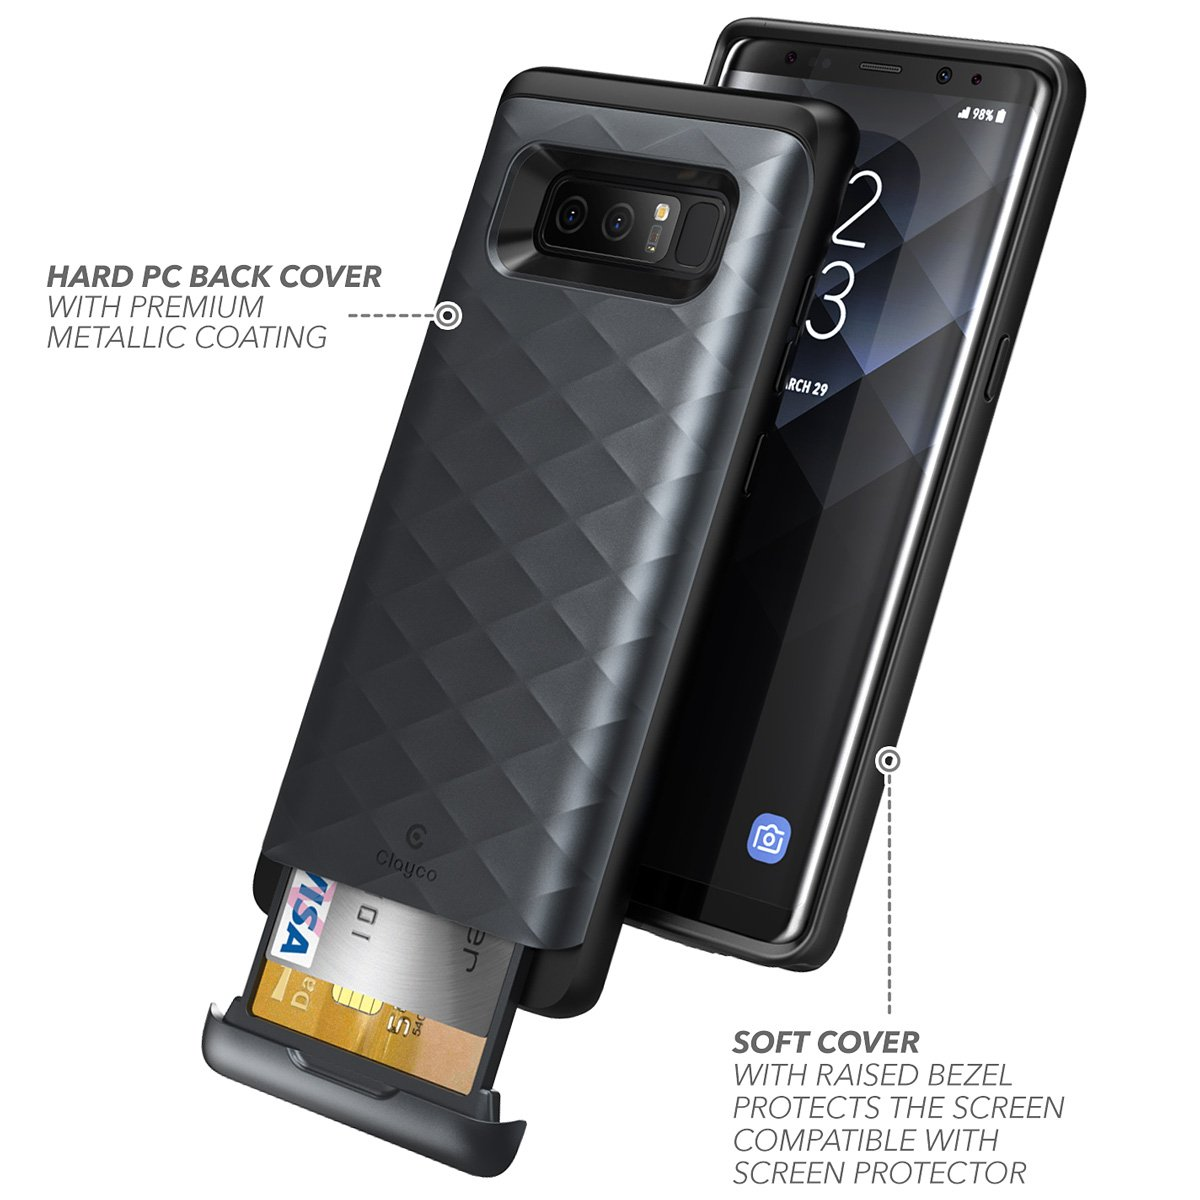 the latest 37ede 128eb Details about For Samsung Galaxy Note 8 Case, Clayco Argos Protective Cover  with ID Card Slot